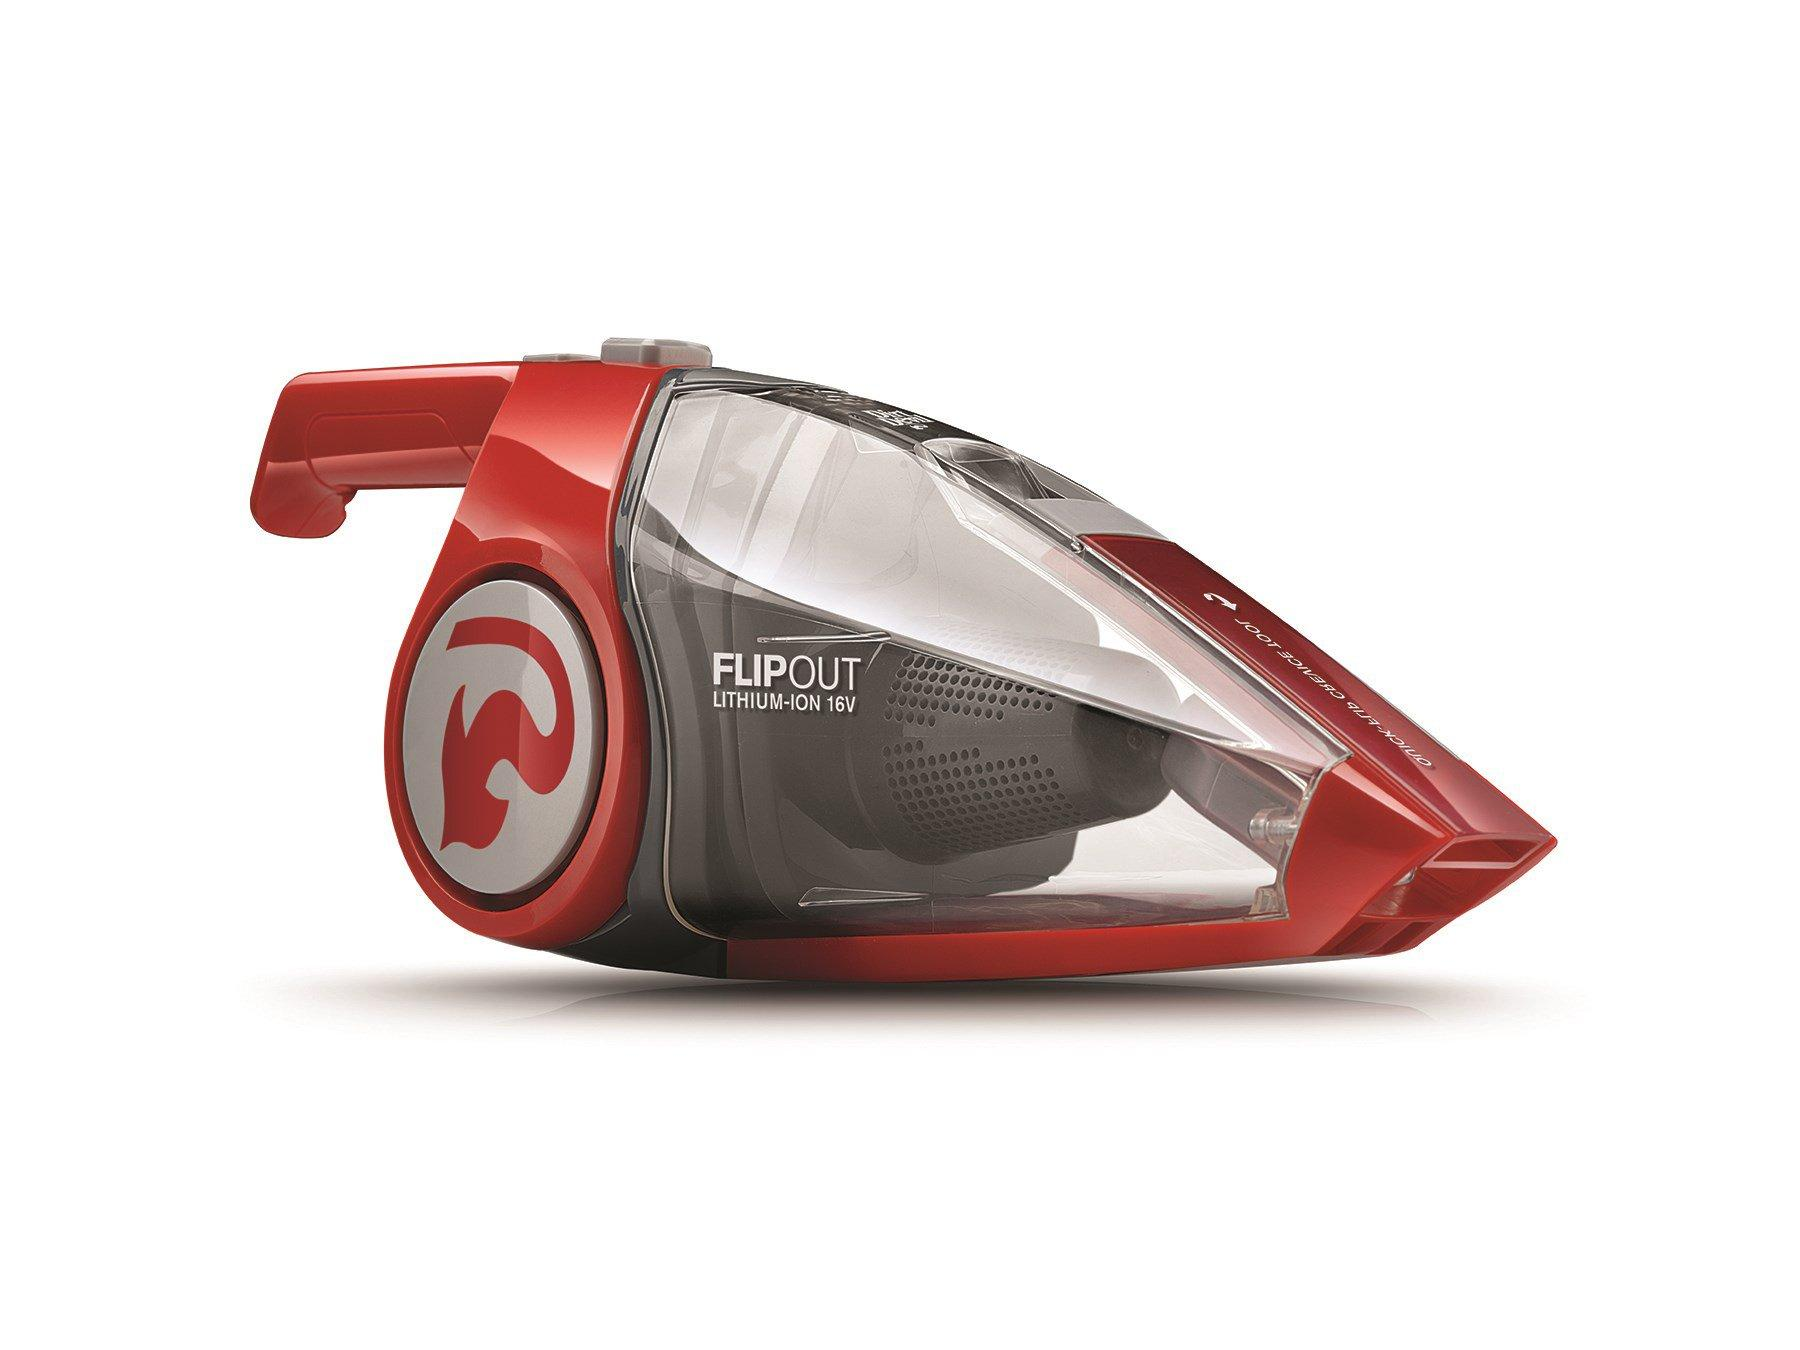 Reconditioned Flipout Lithium Powered Cordless Hand Vac1